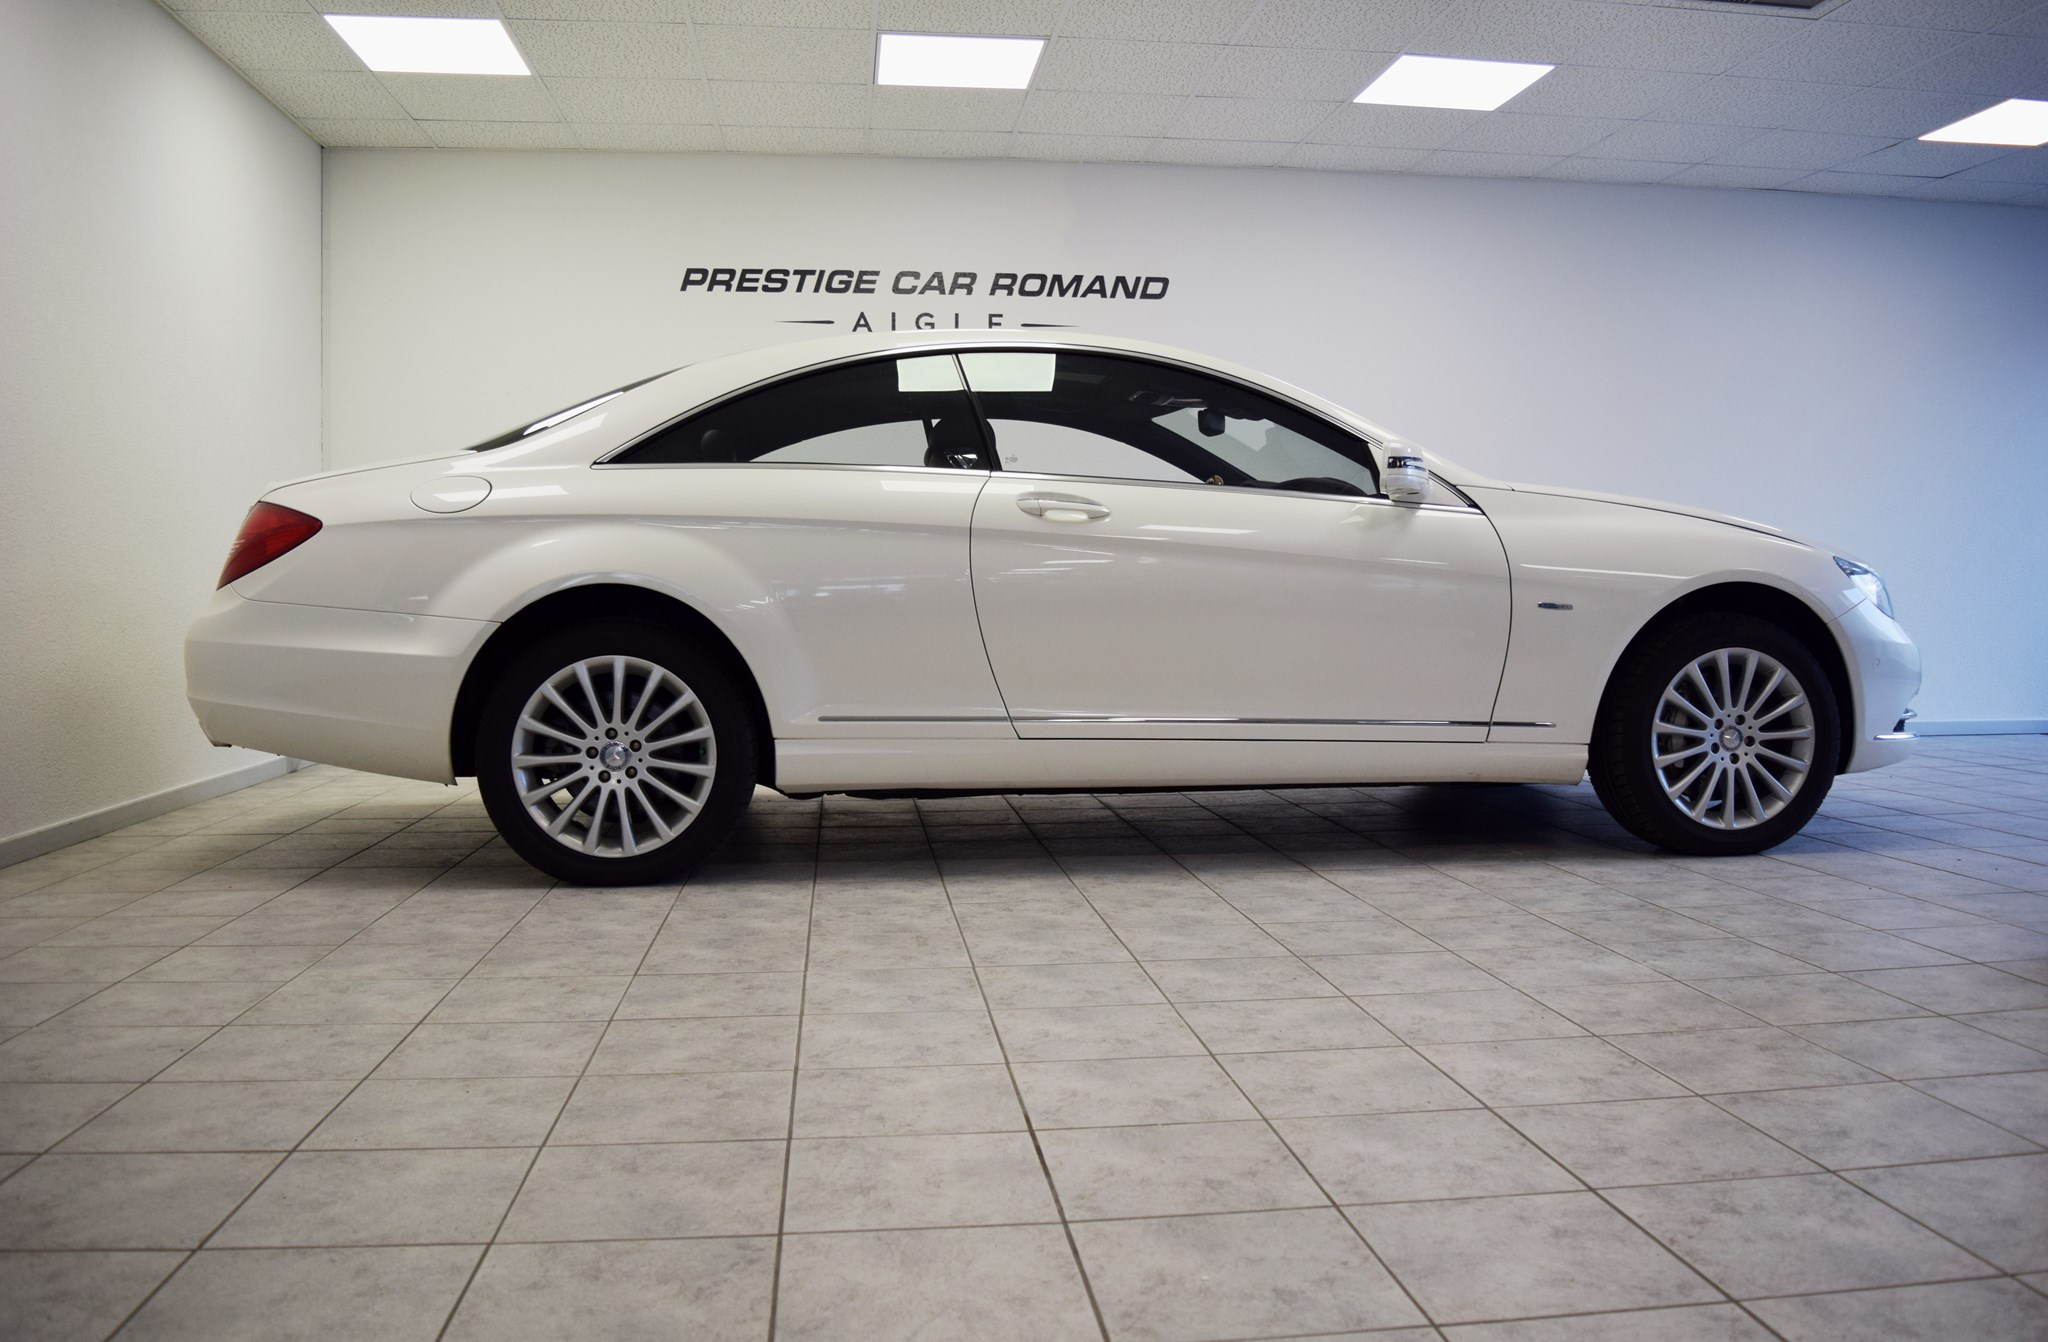 coupe Mercedes-Benz CL 500 4Matic 7G-Tronic